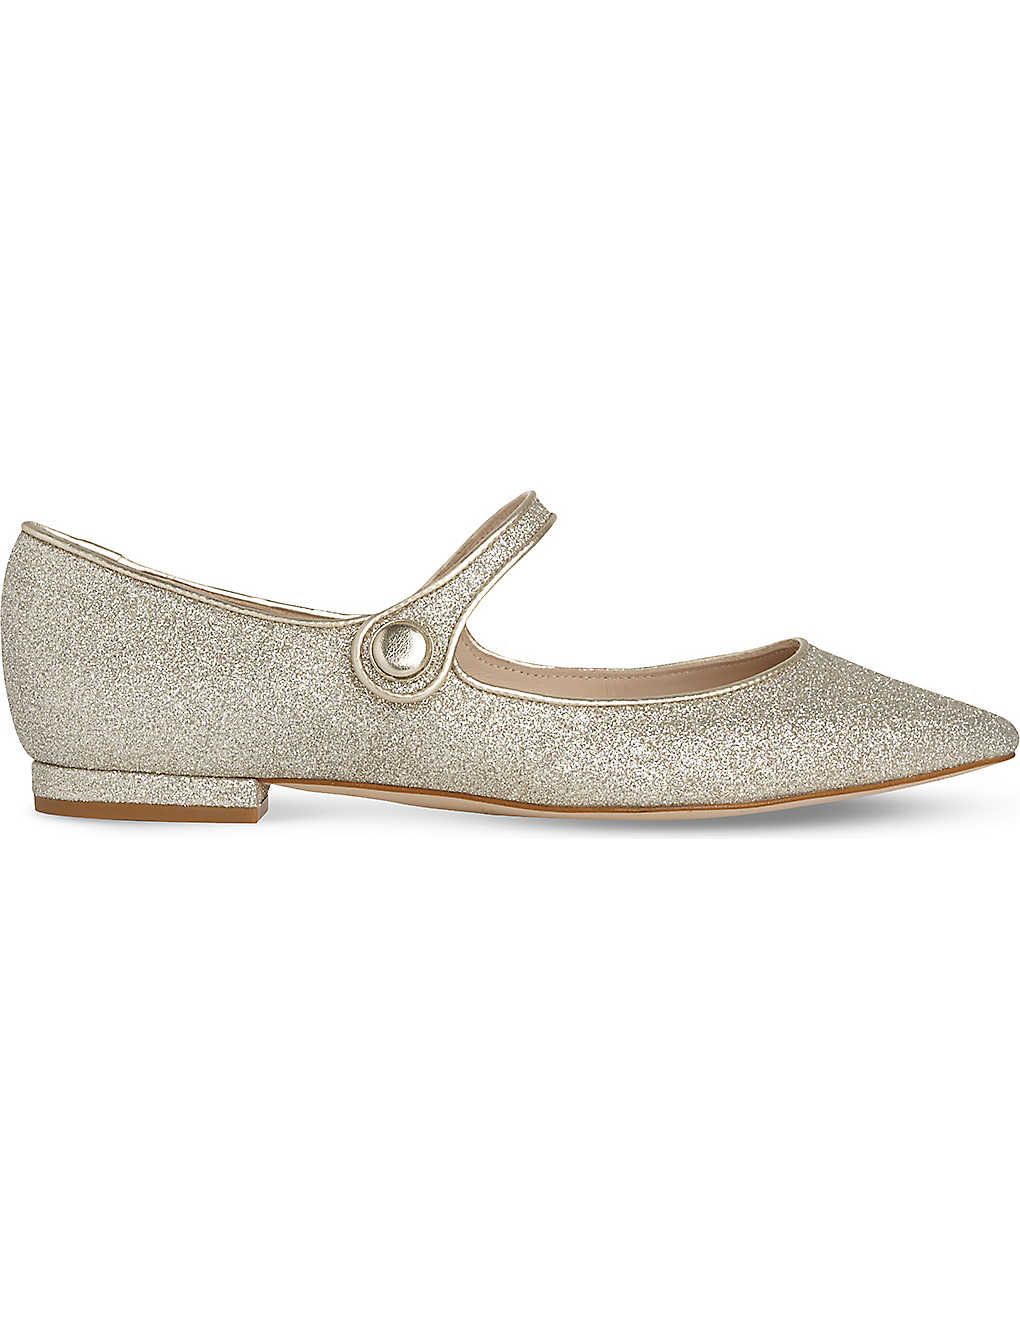 abd738d13 LK BENNETT - Mary-Jane metallic flats | Selfridges.com